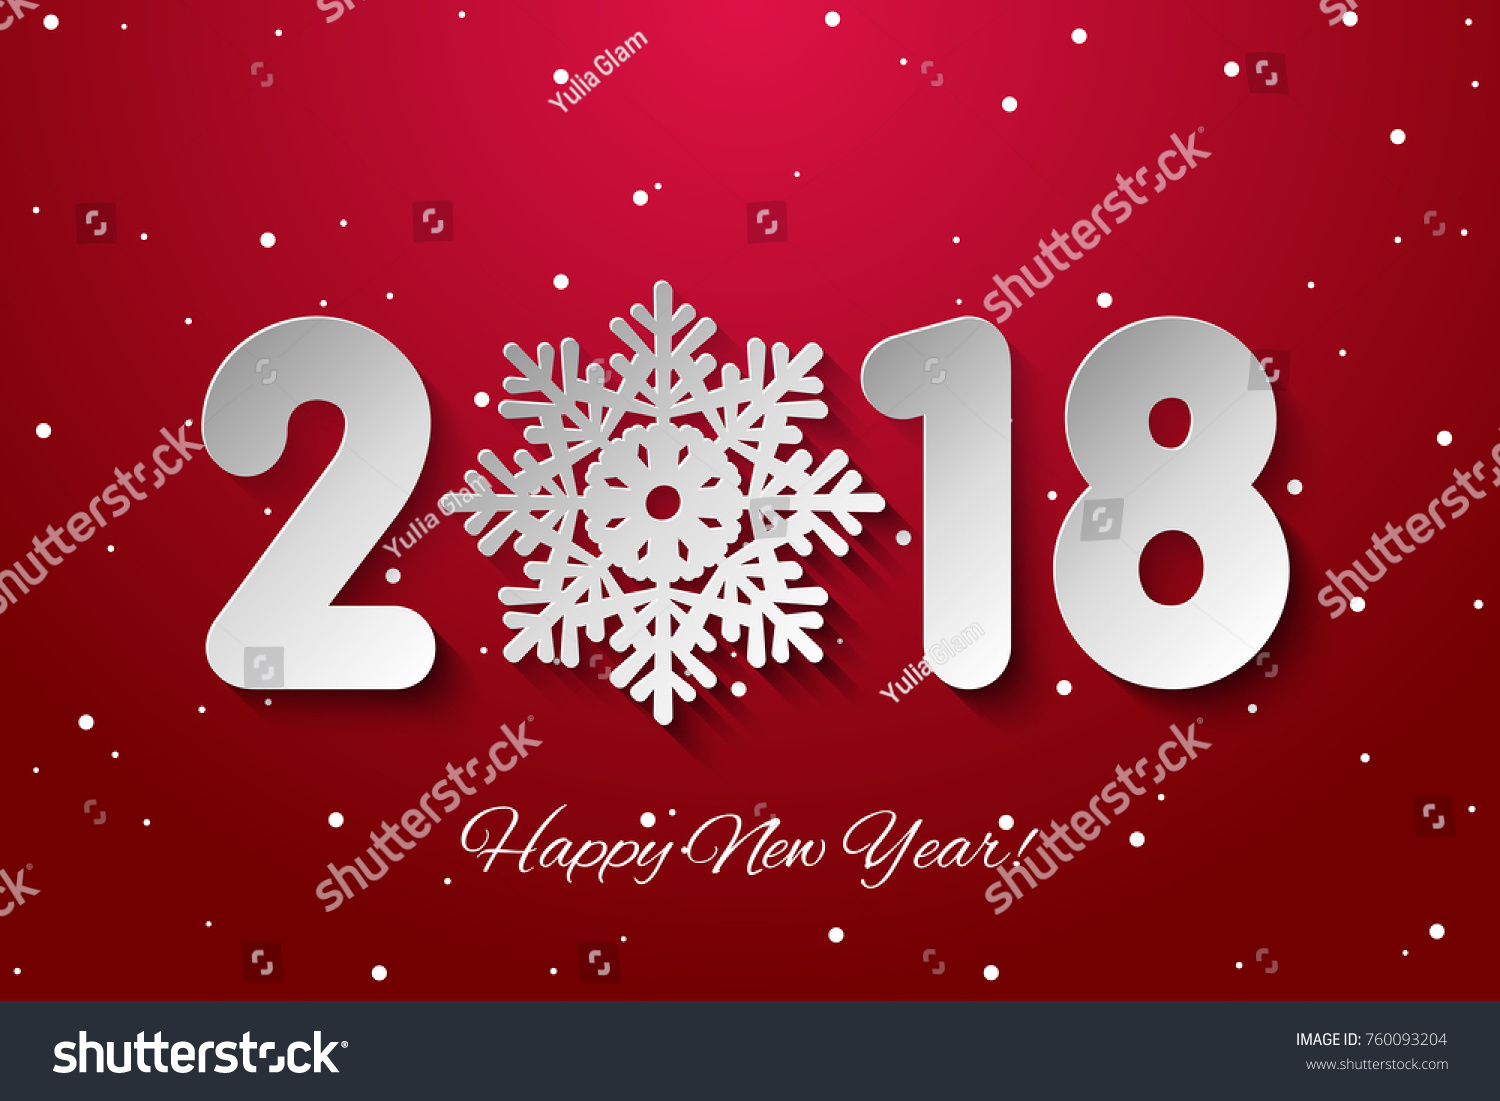 vector happy new year 2018 background with paper cuttings